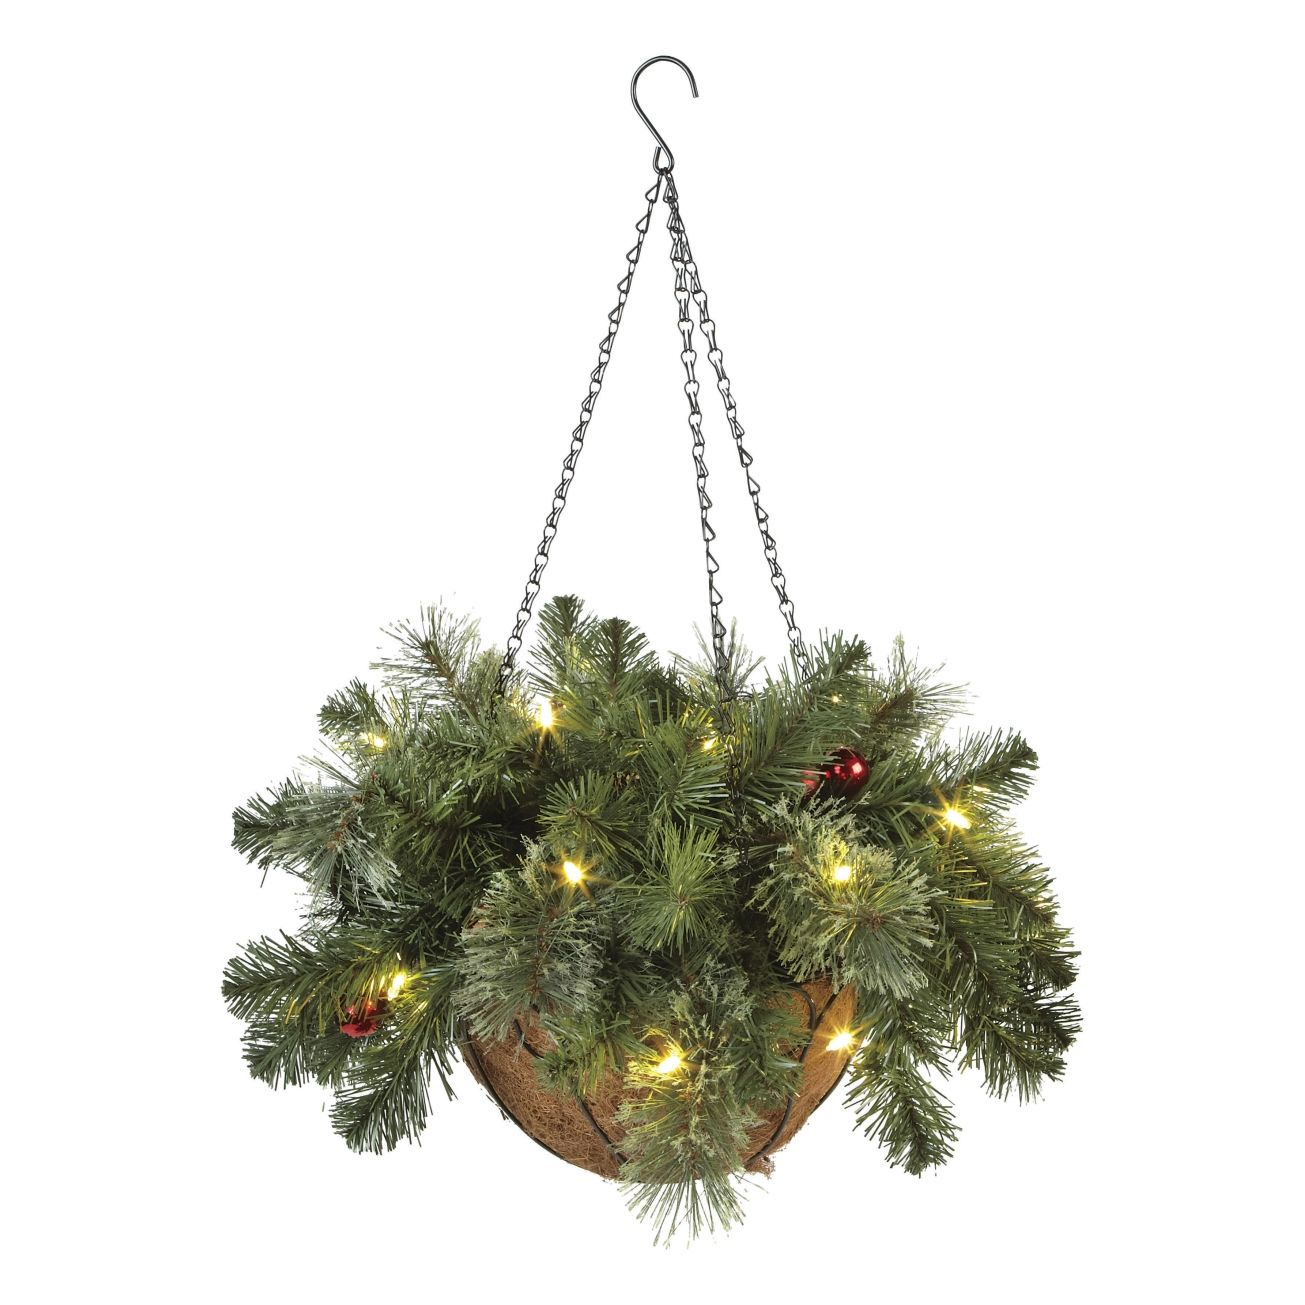 12in Brookhaven Lighted Hanging Basket Outdoor And Window Decor Ace Hardware 26 99 Hanging Baskets Window Decor Hanging Lights